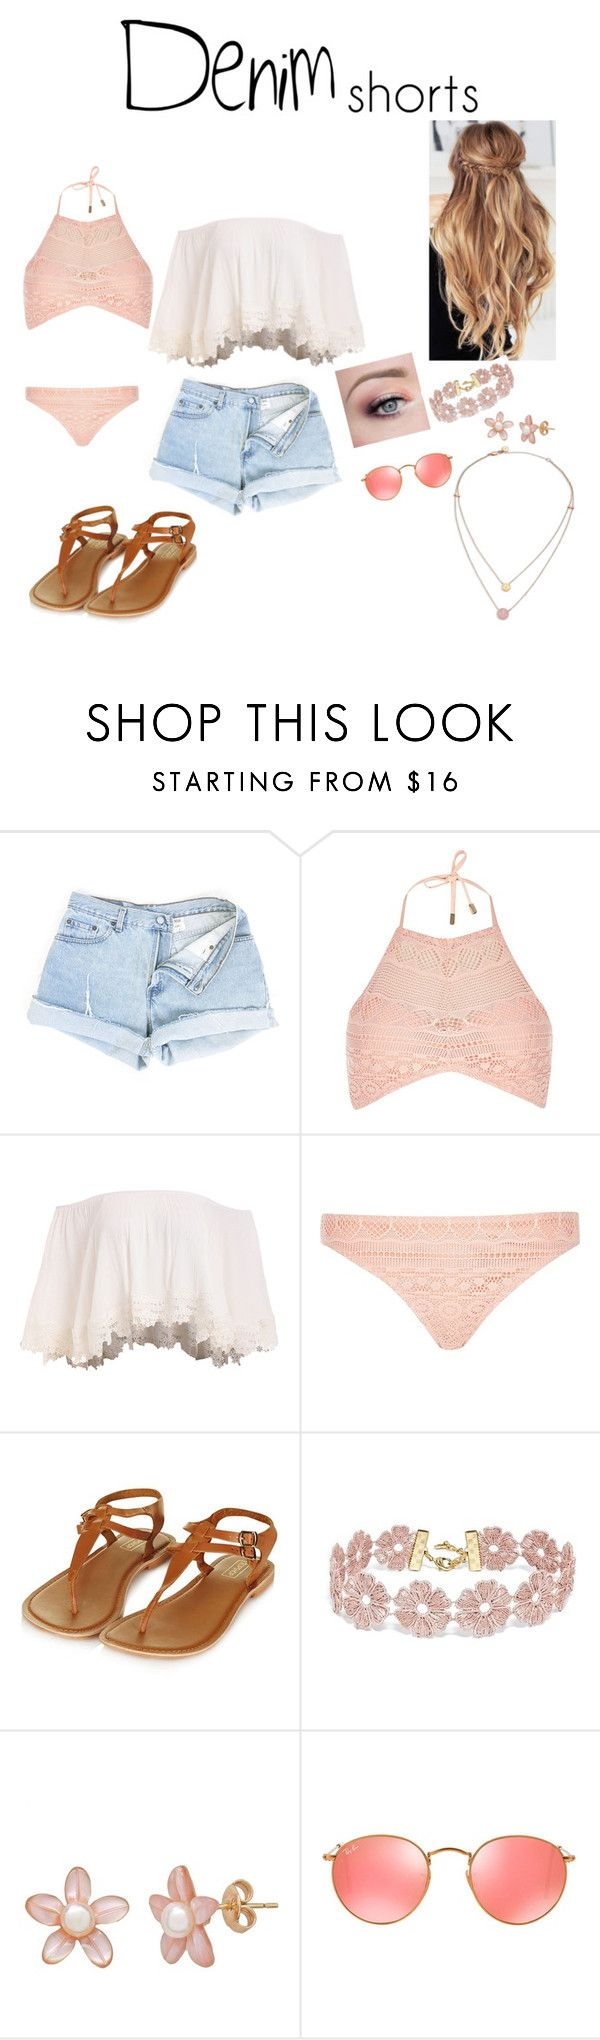 """""""Untitled #349"""" by ilovevampirediarieslife ❤ liked on Polyvore featuring River Island, Topshop, BaubleBar, Ray-Ban, Michael Kors, jeanshorts, denimshorts and cutoffs"""